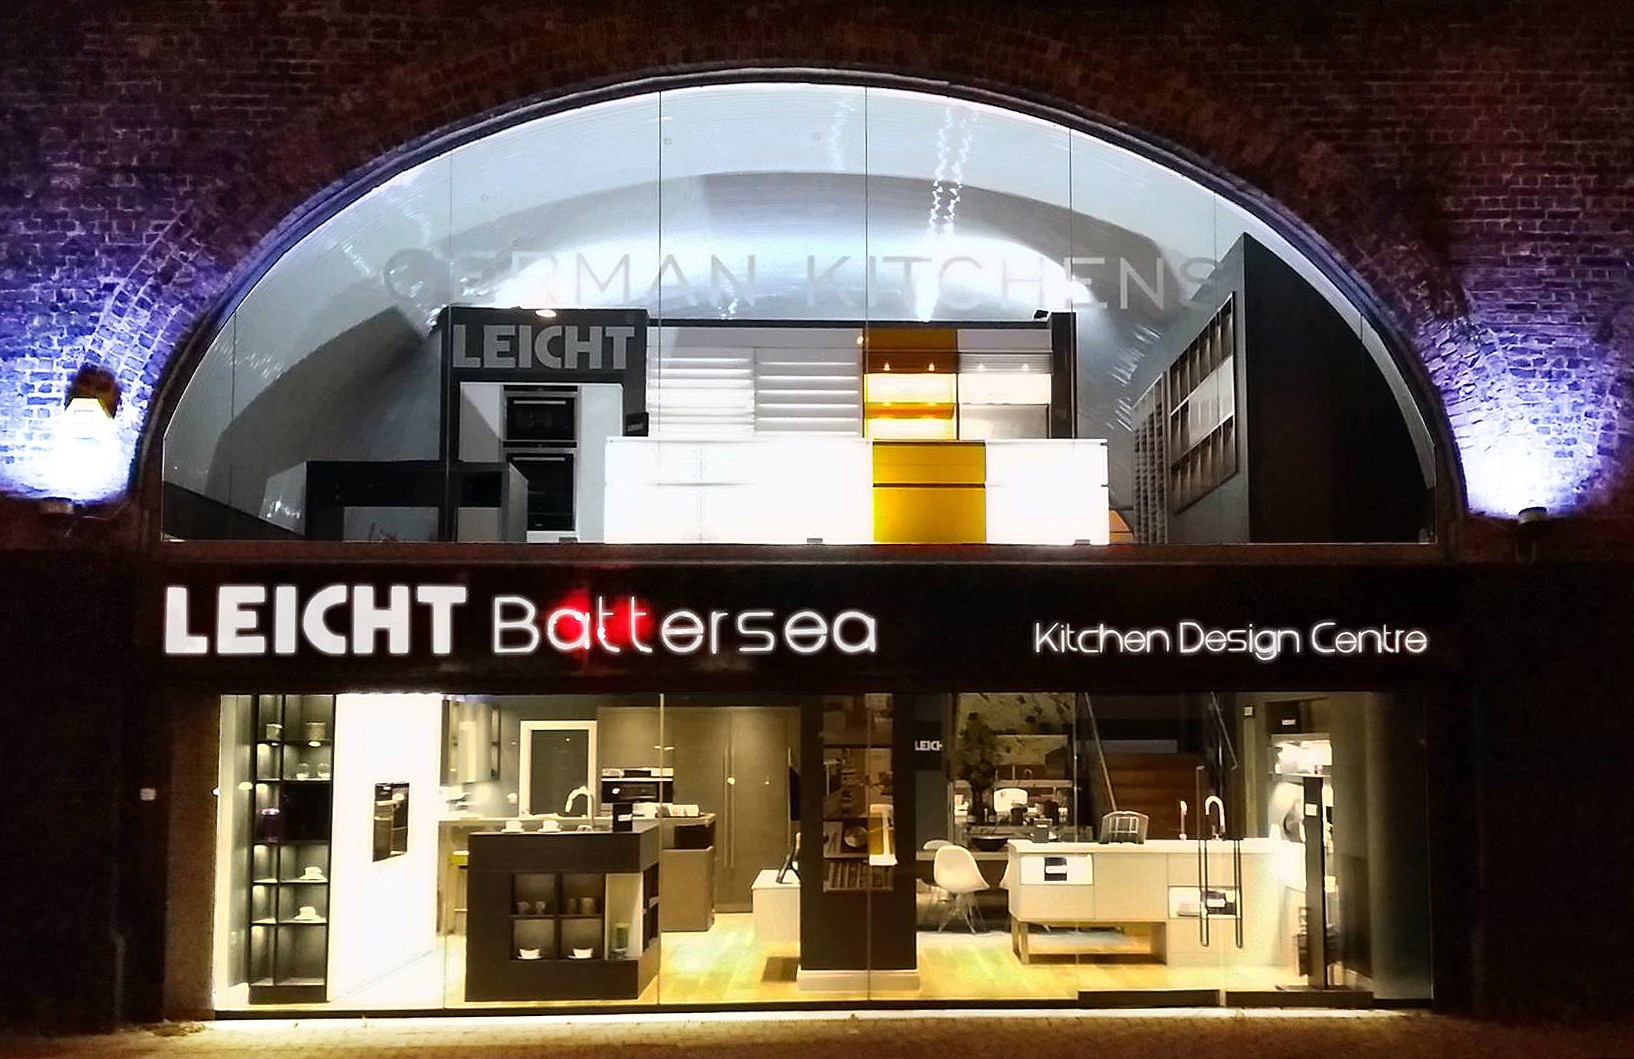 Bon Leicht Kitchen Design Centre Battersea, London